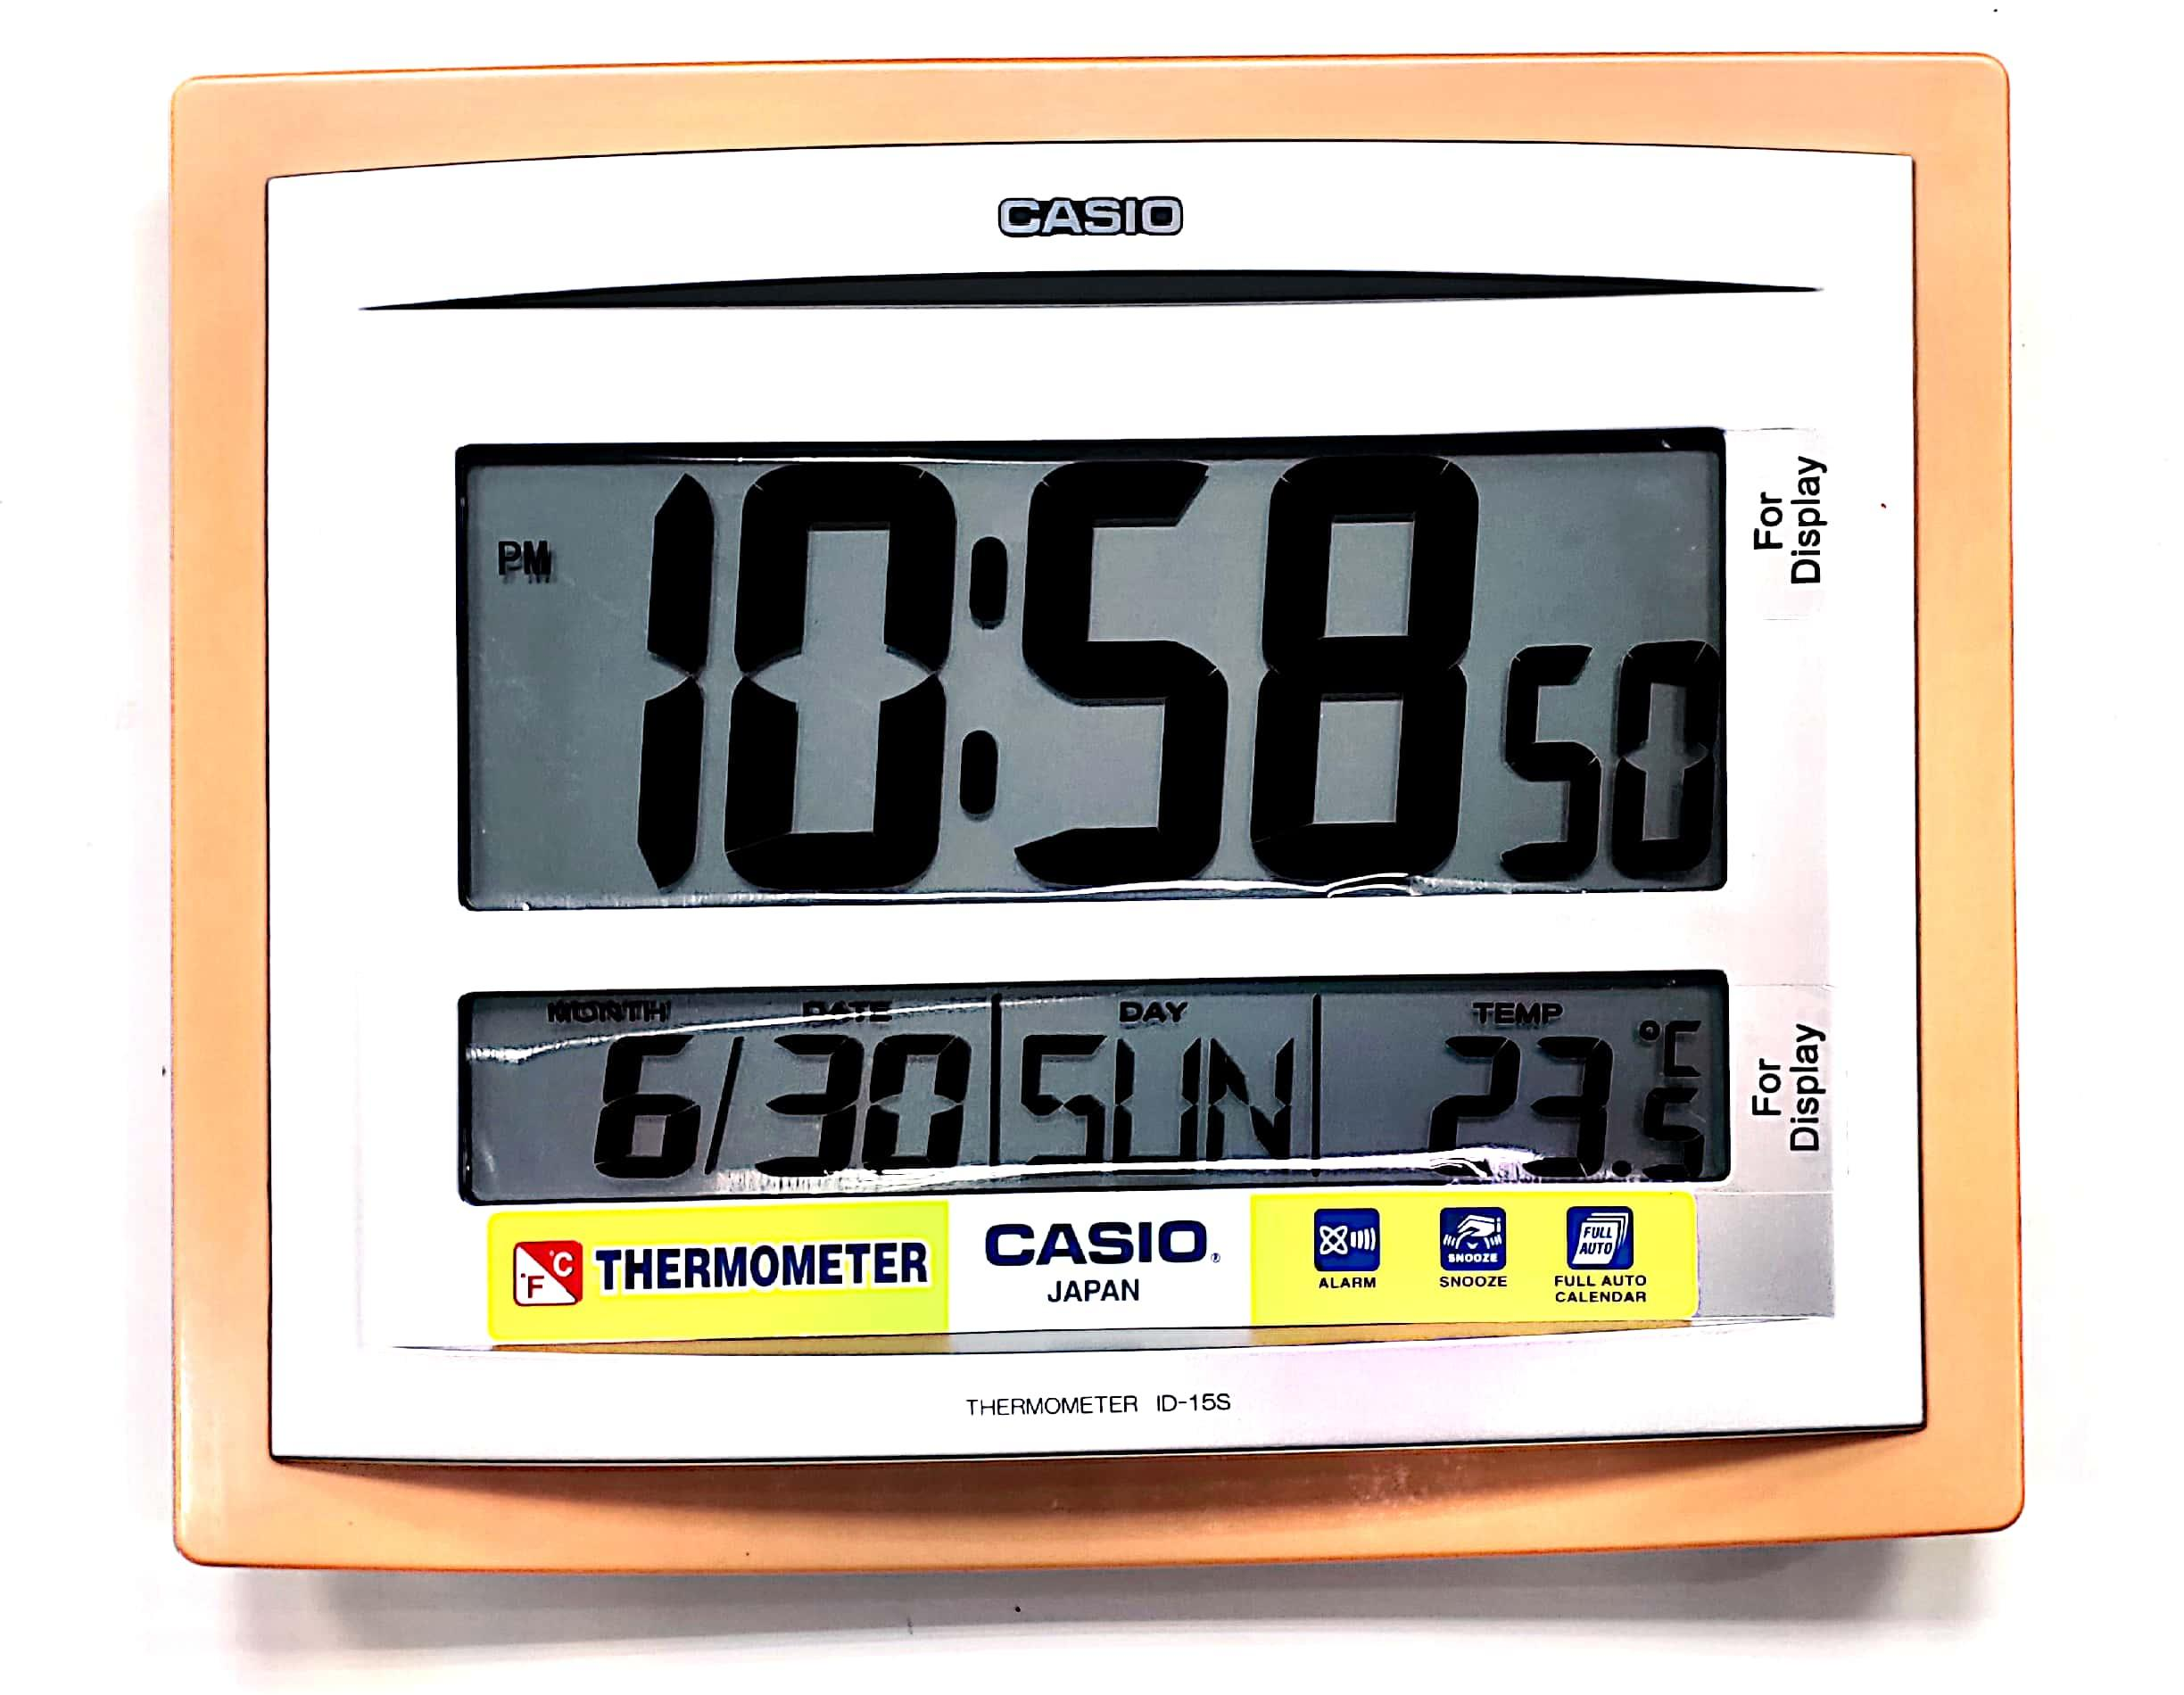 Casio Id-15s-5 Wall and Table Wood / brown Pattern Clock Temperature Digital Auto Calendar Thermo Large Wall Clock Limited Edition Battery Included